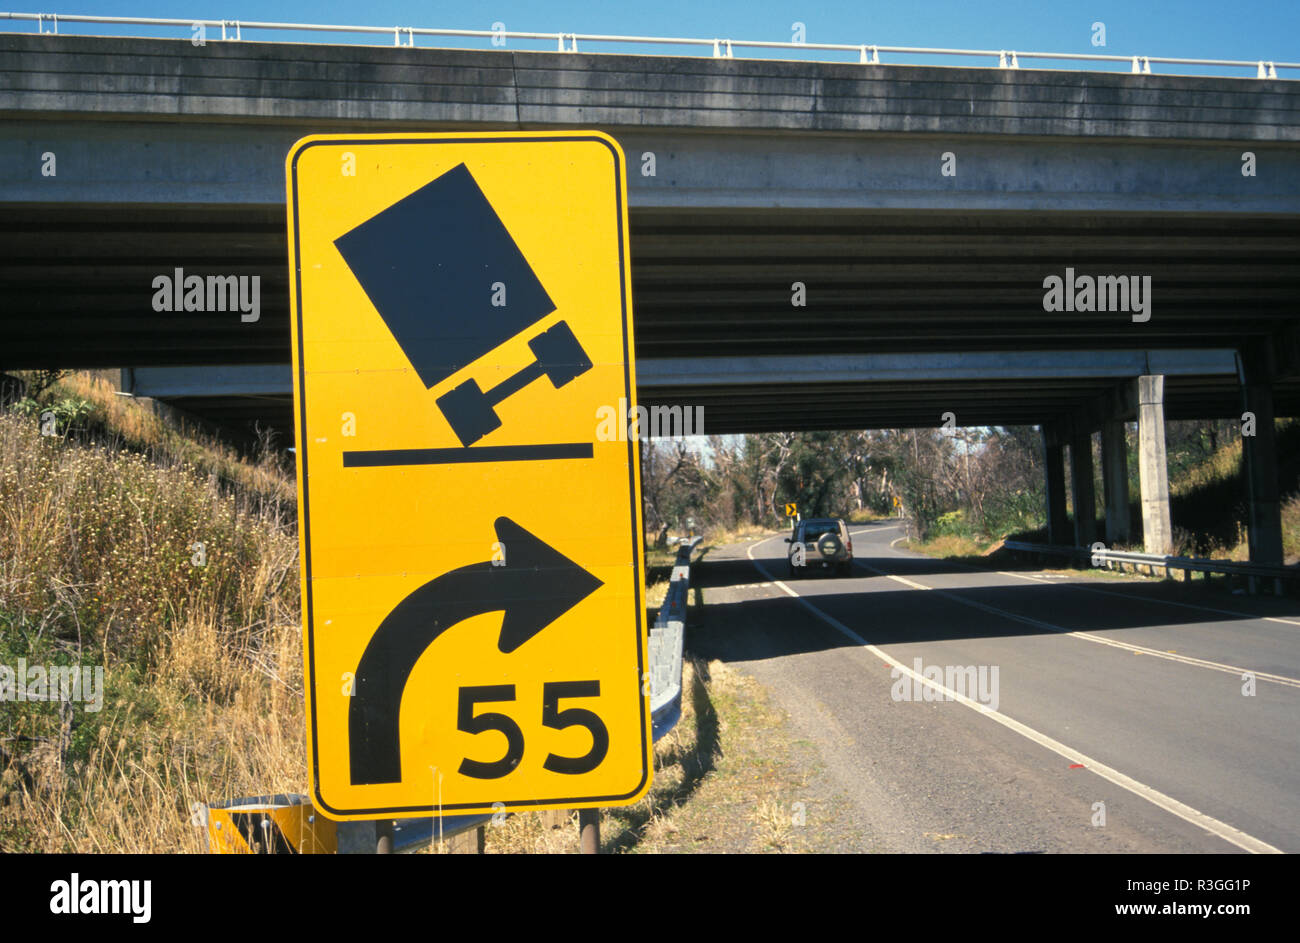 A ROAD SIGN WARNS DRIVERS TO REDUCE SPEED AS A BEND IN THE ROAD APPROACHES (ILLUSTRATED BY TRUCK TIPPING OVER) NEW SOUTH WALES, AUSTRALIA - Stock Image